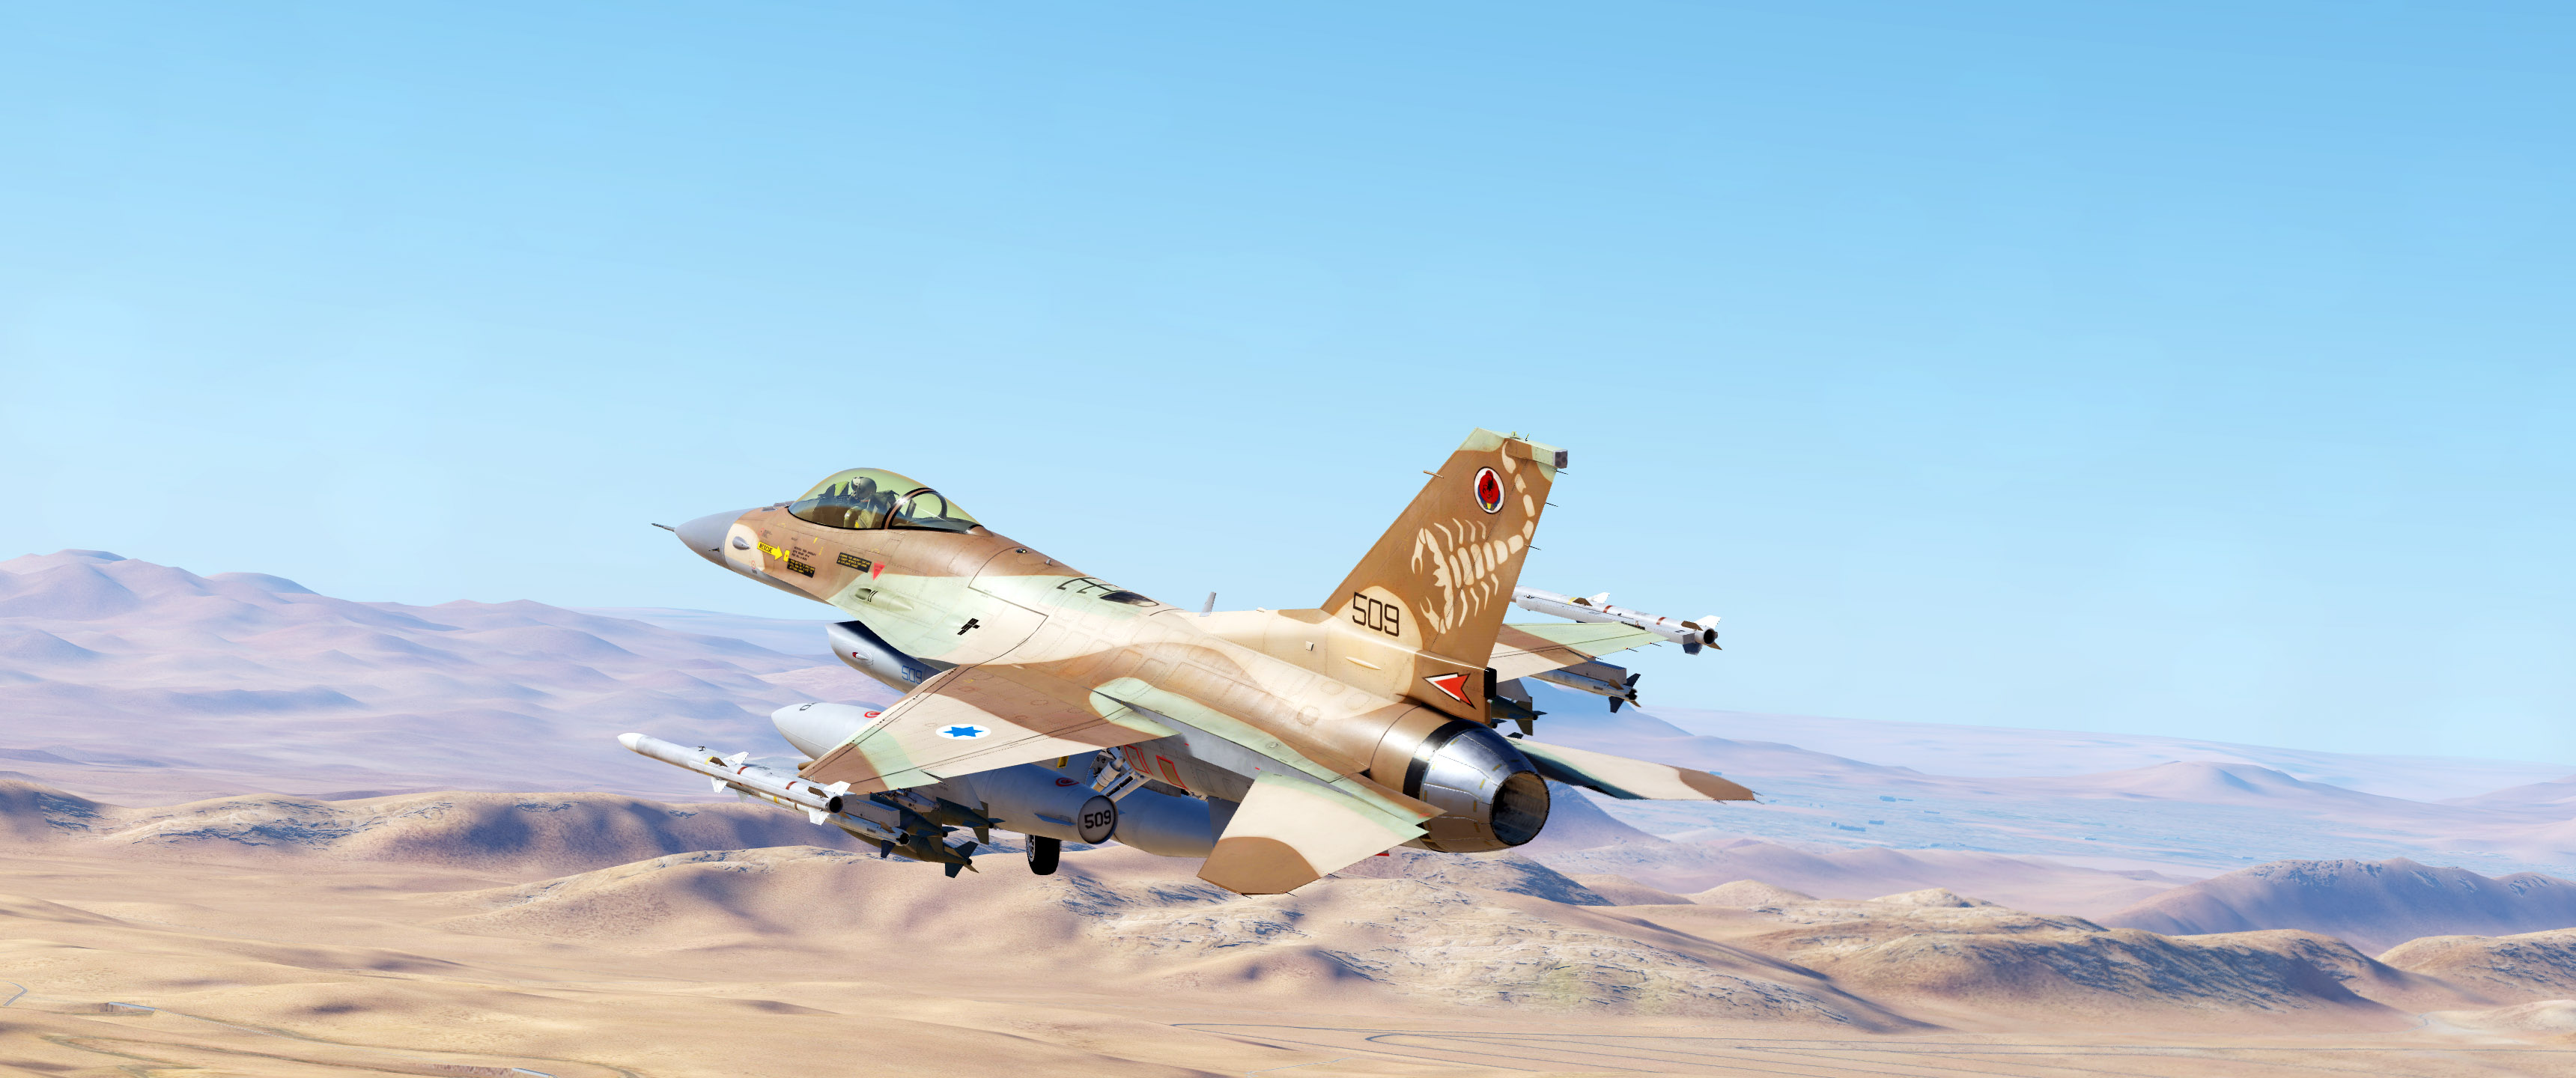 [Updated] IAF F16C - 105 Squadron - The Scorpion